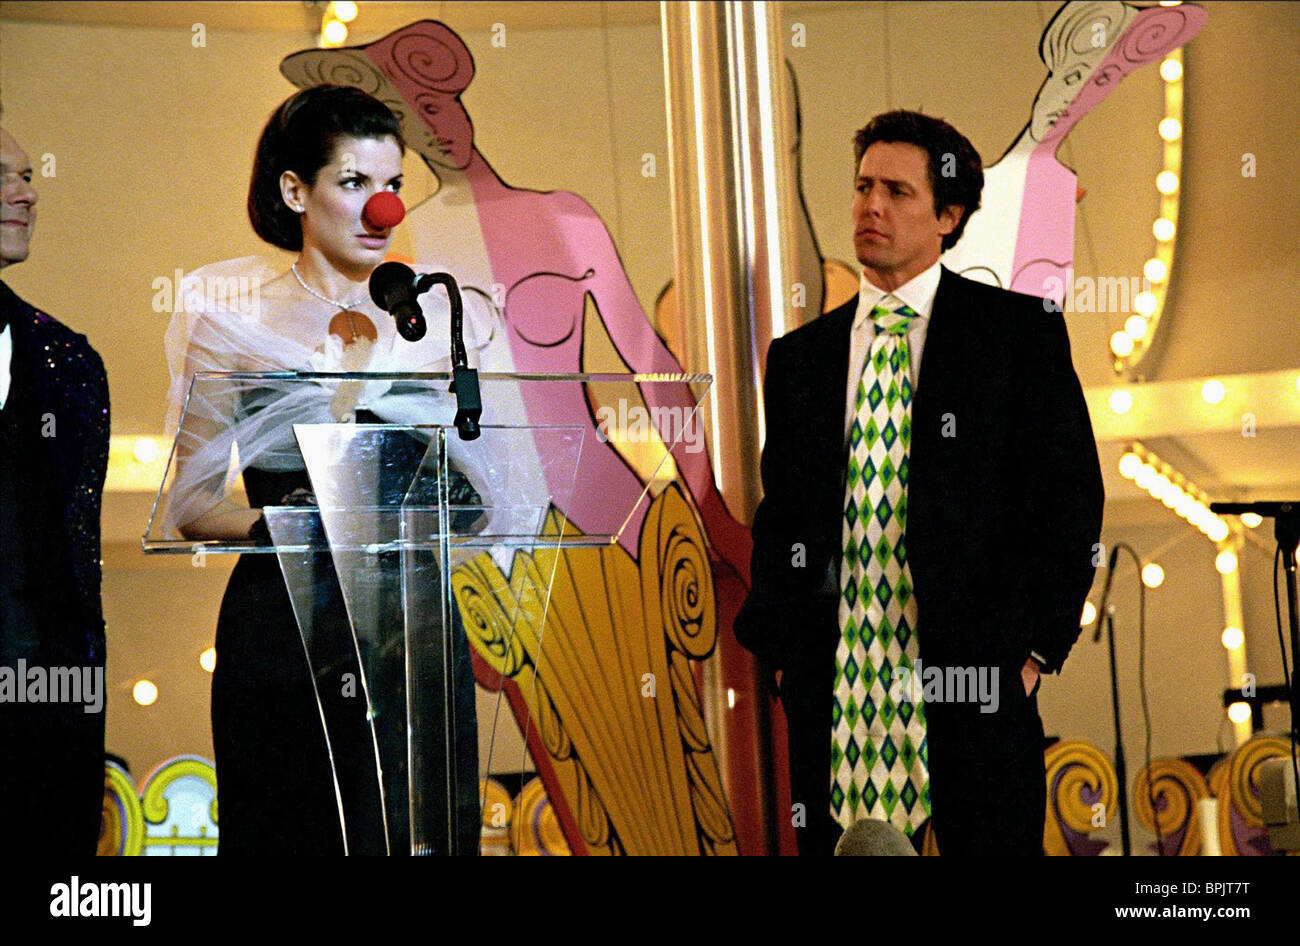 sandra bullock hugh grant two weeks notice 2002 stock photo sandra bullock hugh grant two weeks notice 2002